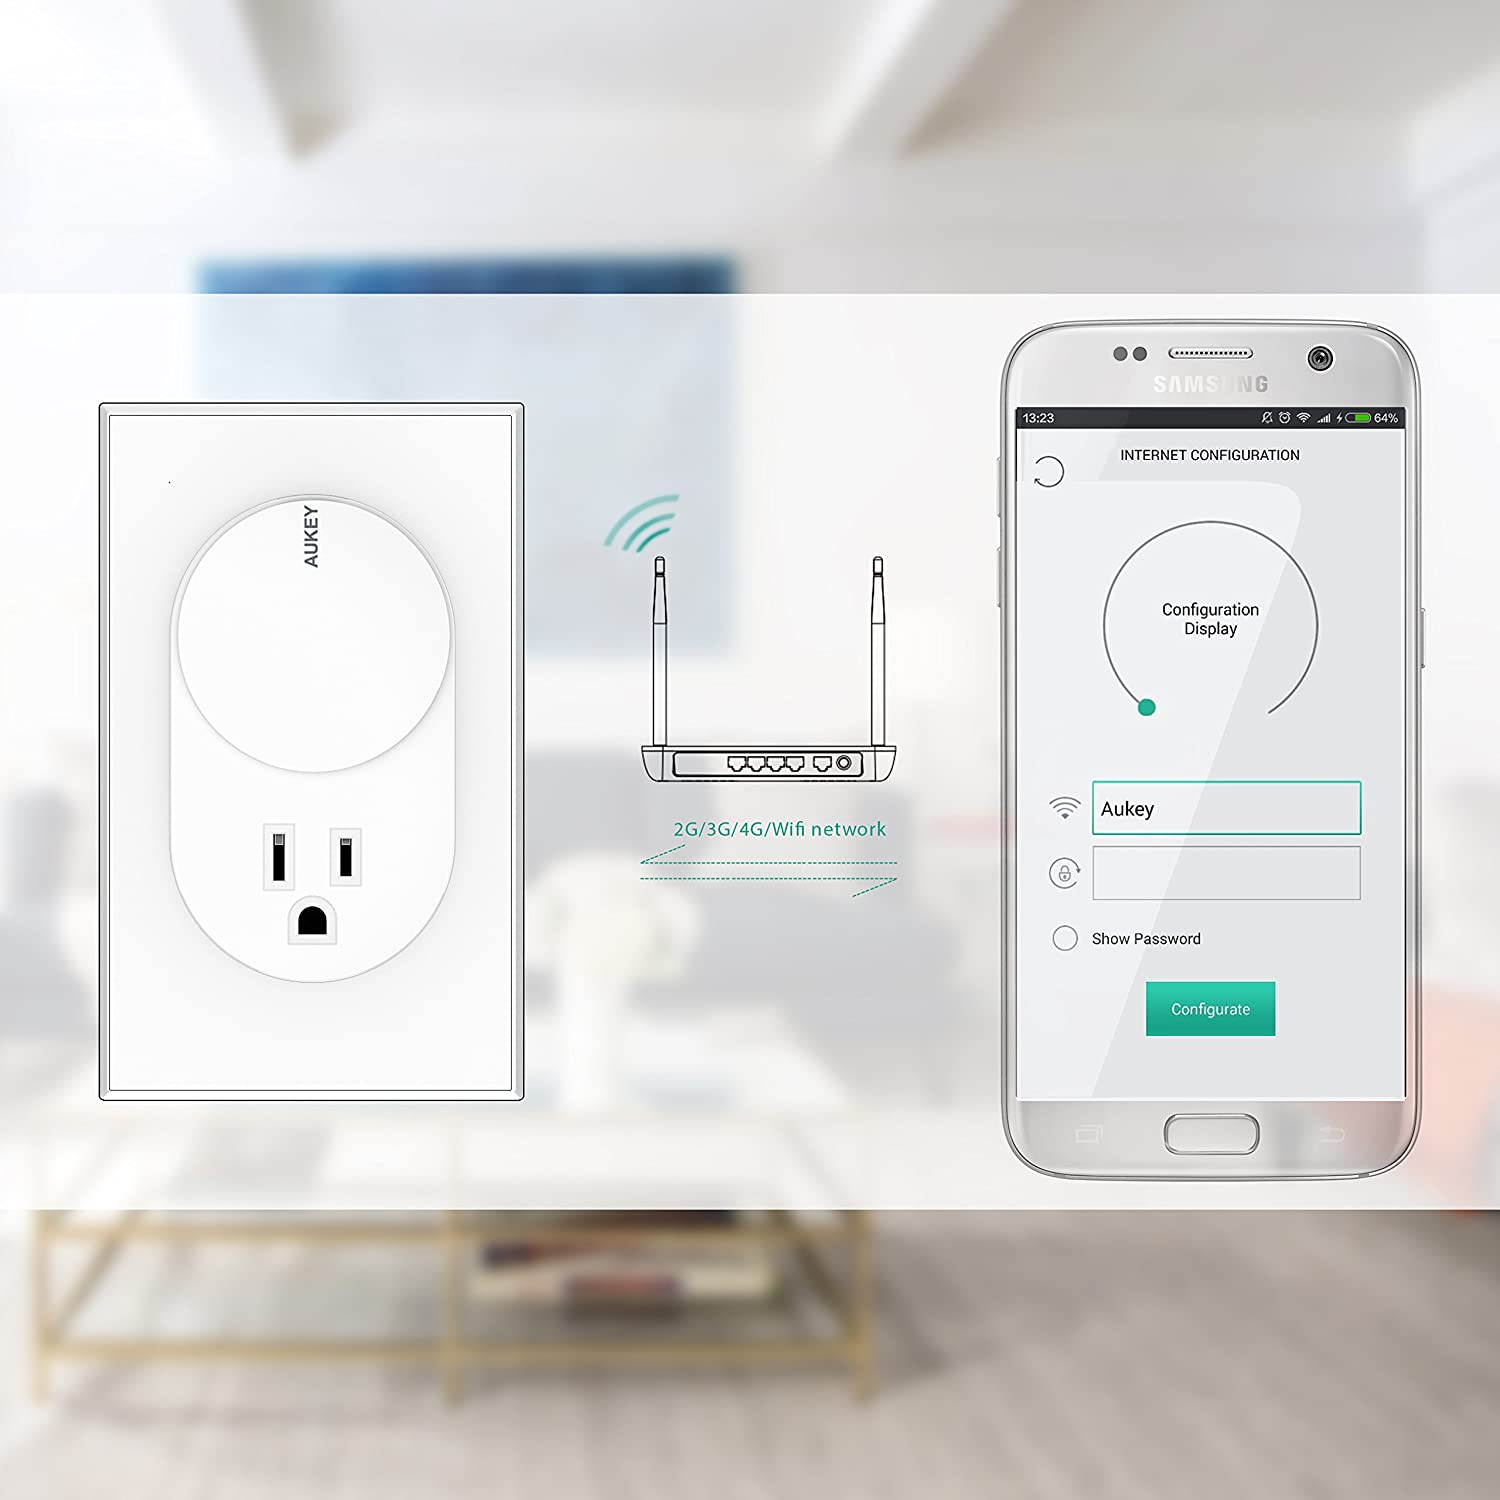 AUKEY WiFi Switch, Smart Plug with 2 USB Ports and Mobile App for 2.4GHz WiFi Networks - - Amazon.com